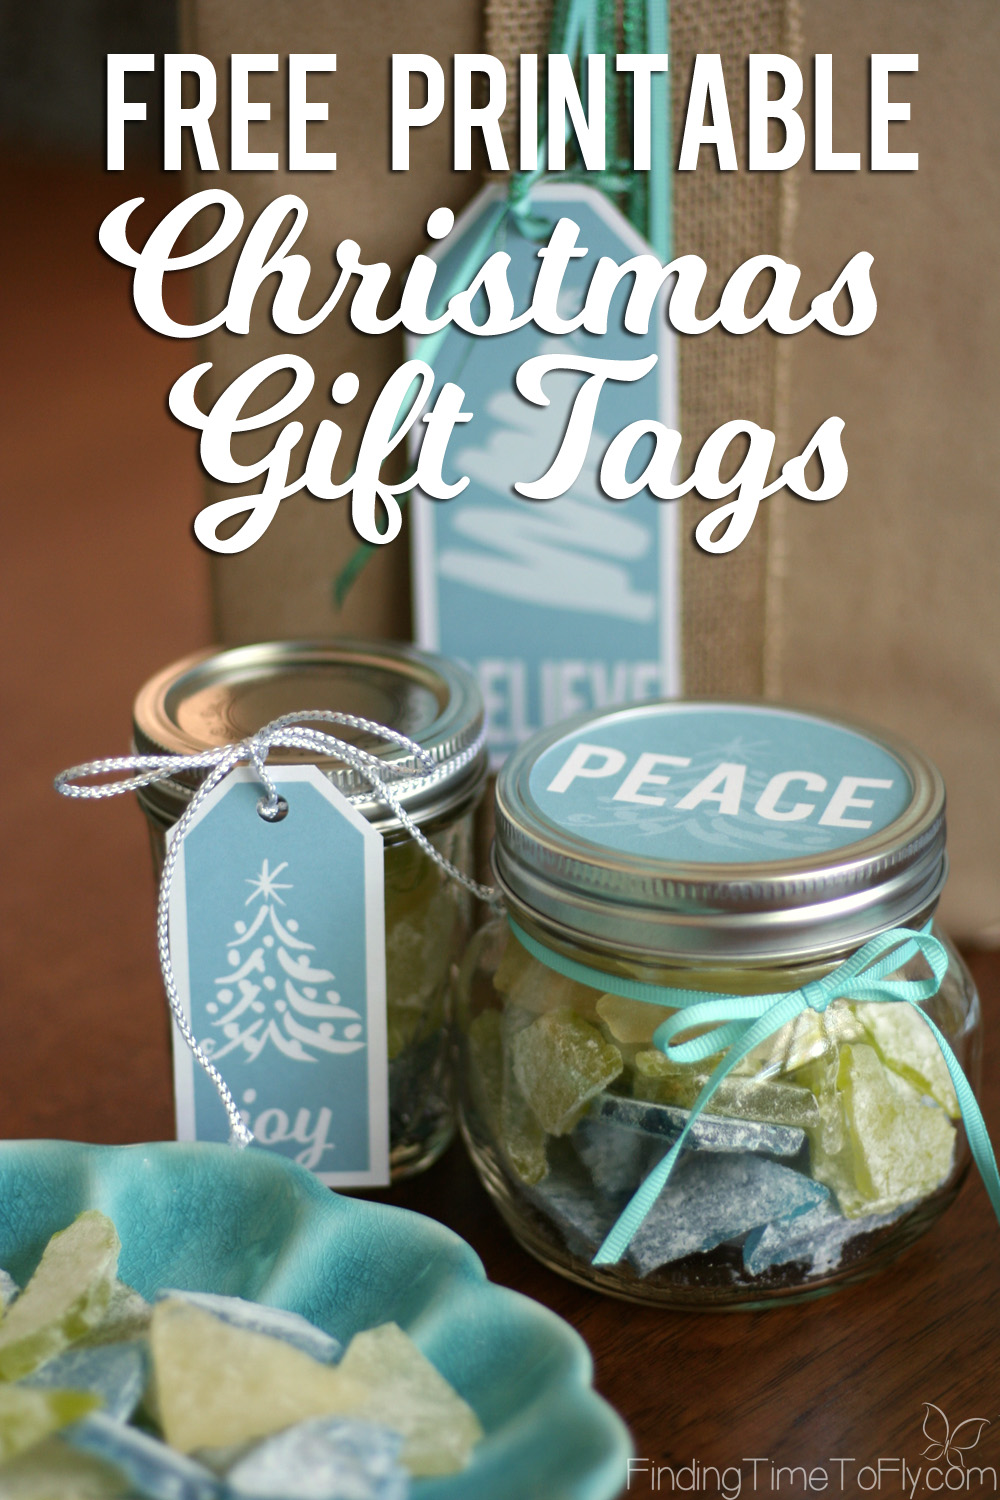 Love these blue printable Christmas gift tags! Simple, elegant gift tags that will go with silver and gold Christmas decor or even my Coastal Christmas theme. There are even round labels that fit large and small mason jar lids!